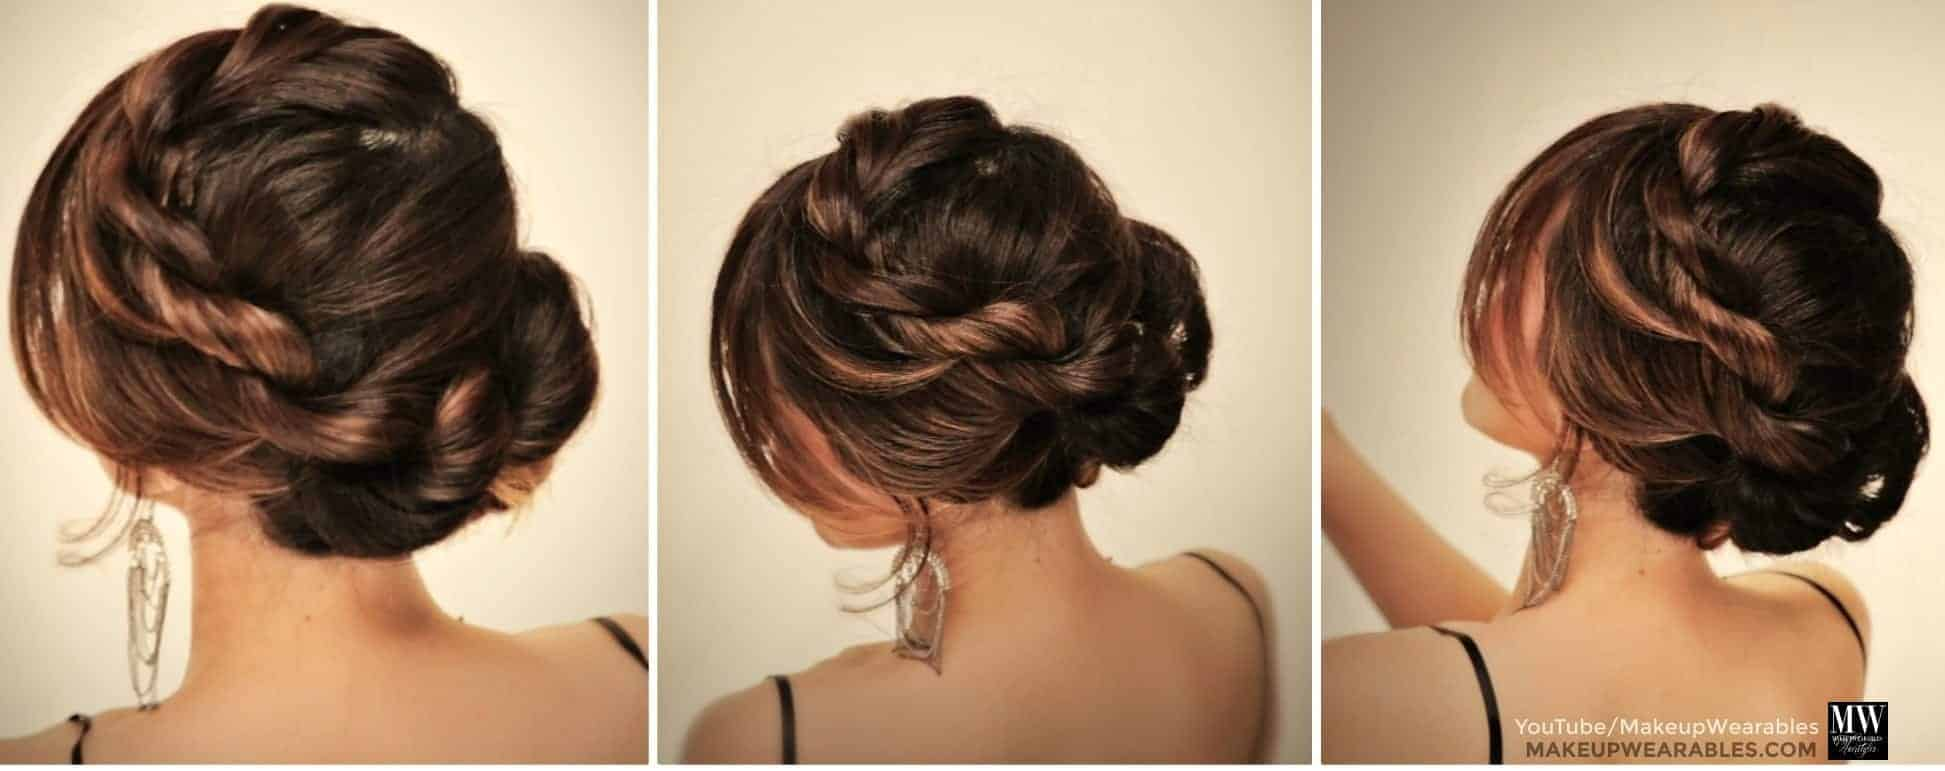 The Easy Bun Hairstyles For Long Hair Womenstyles Com